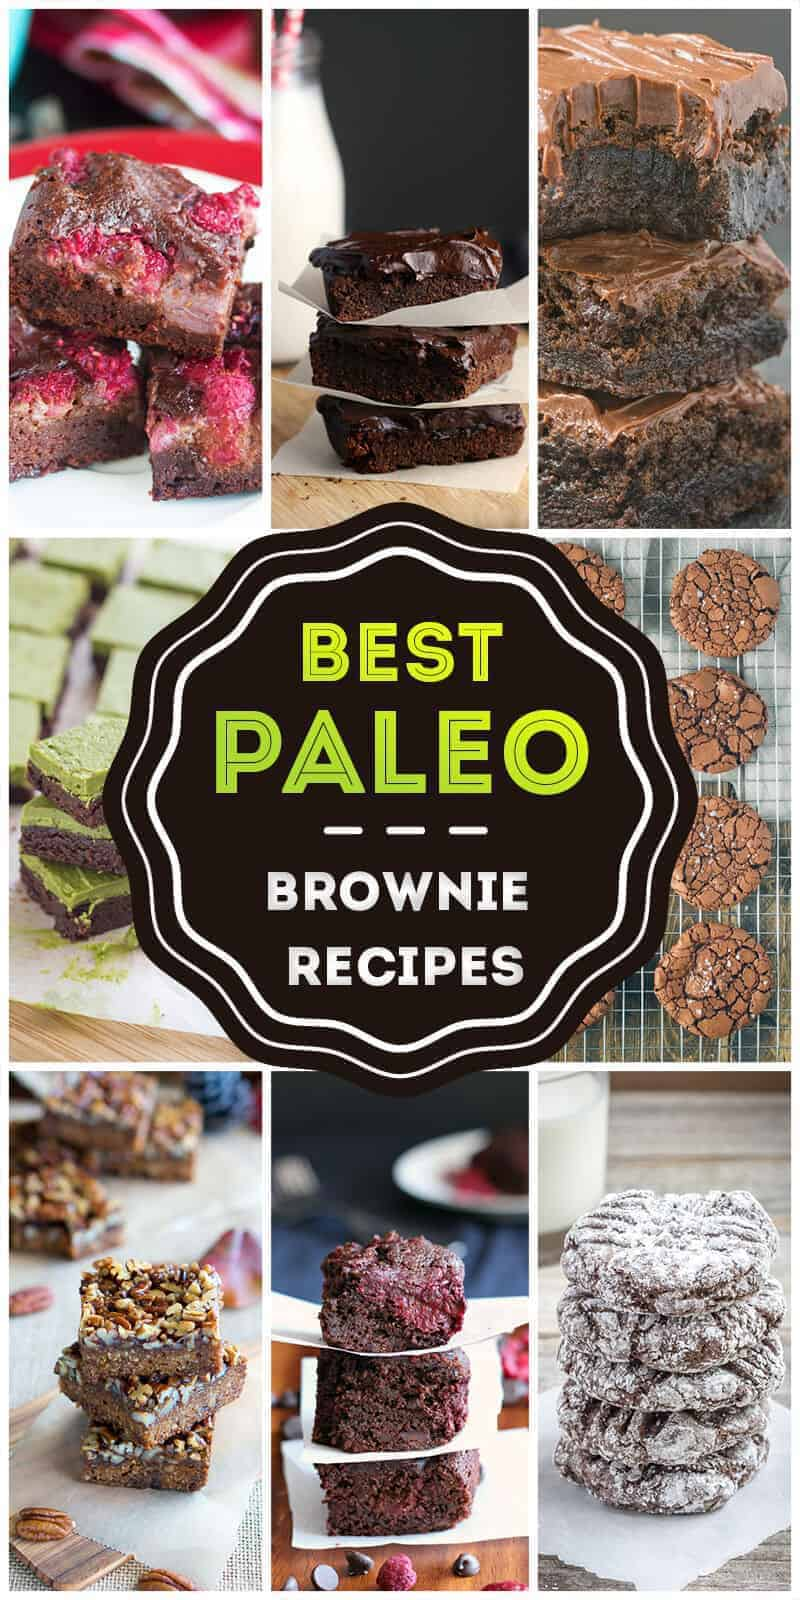 Best Paleo Brownies